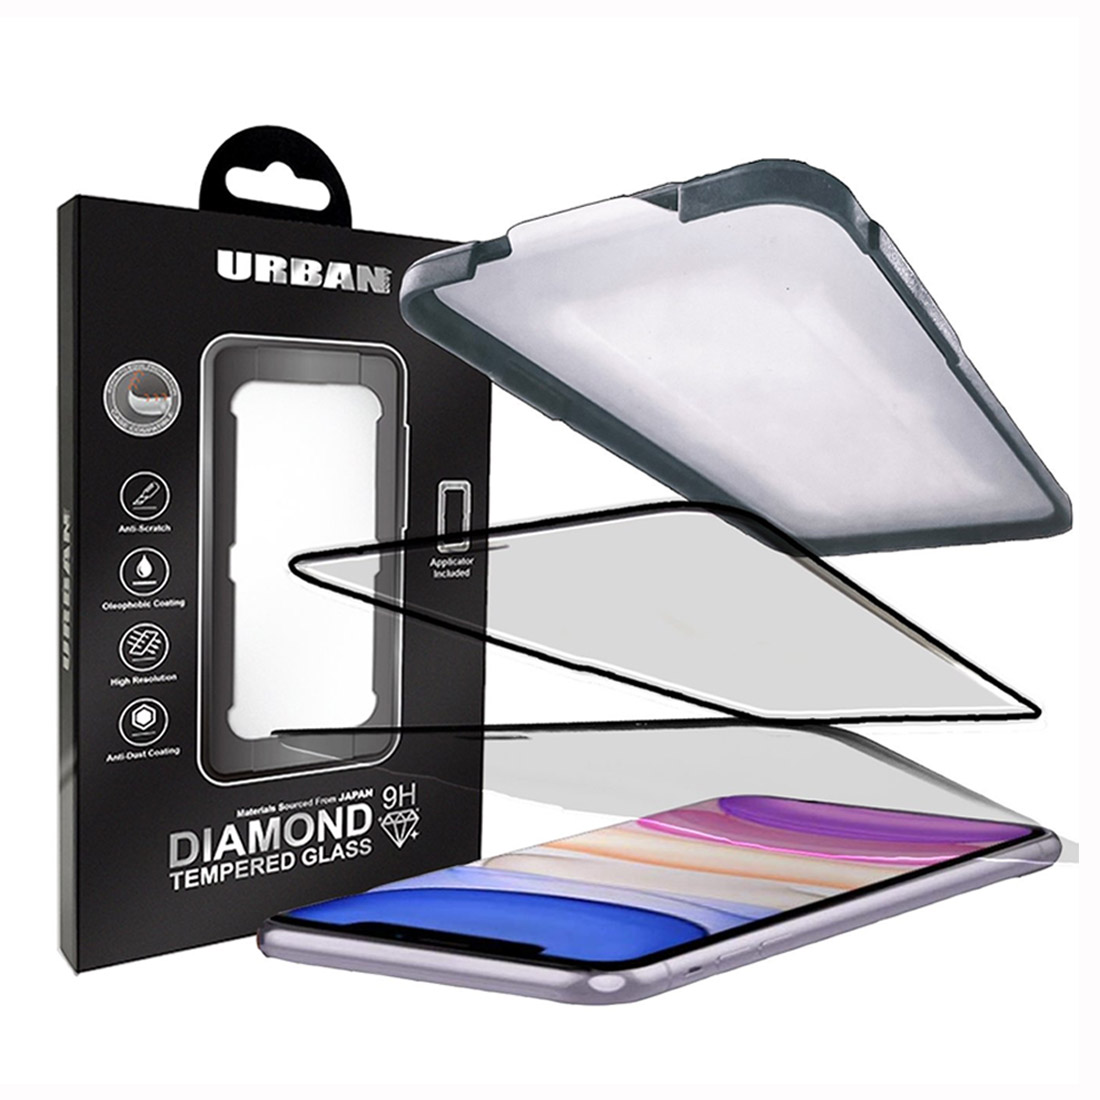 Urban Diamond Tempered Glass Screen Protector For iPhone 11